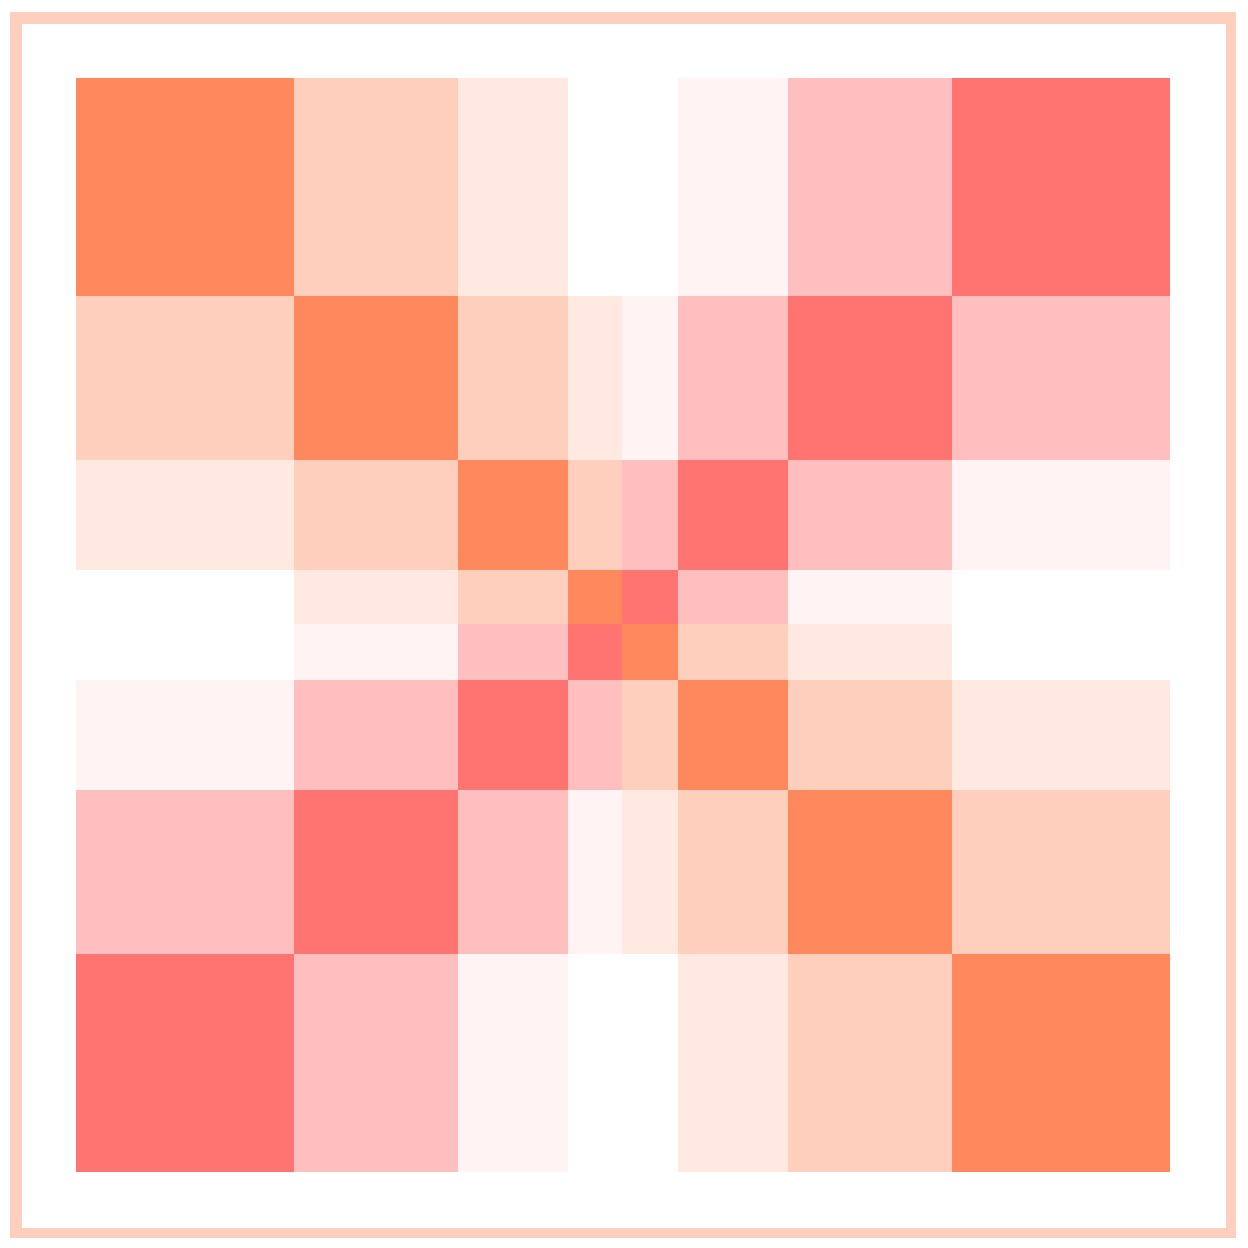 This quilt shows me simply playing with color gradation in one of the Irregular Grids from the Layout Library. I kind of like the simplicity of using the colors with squares and rectangles.